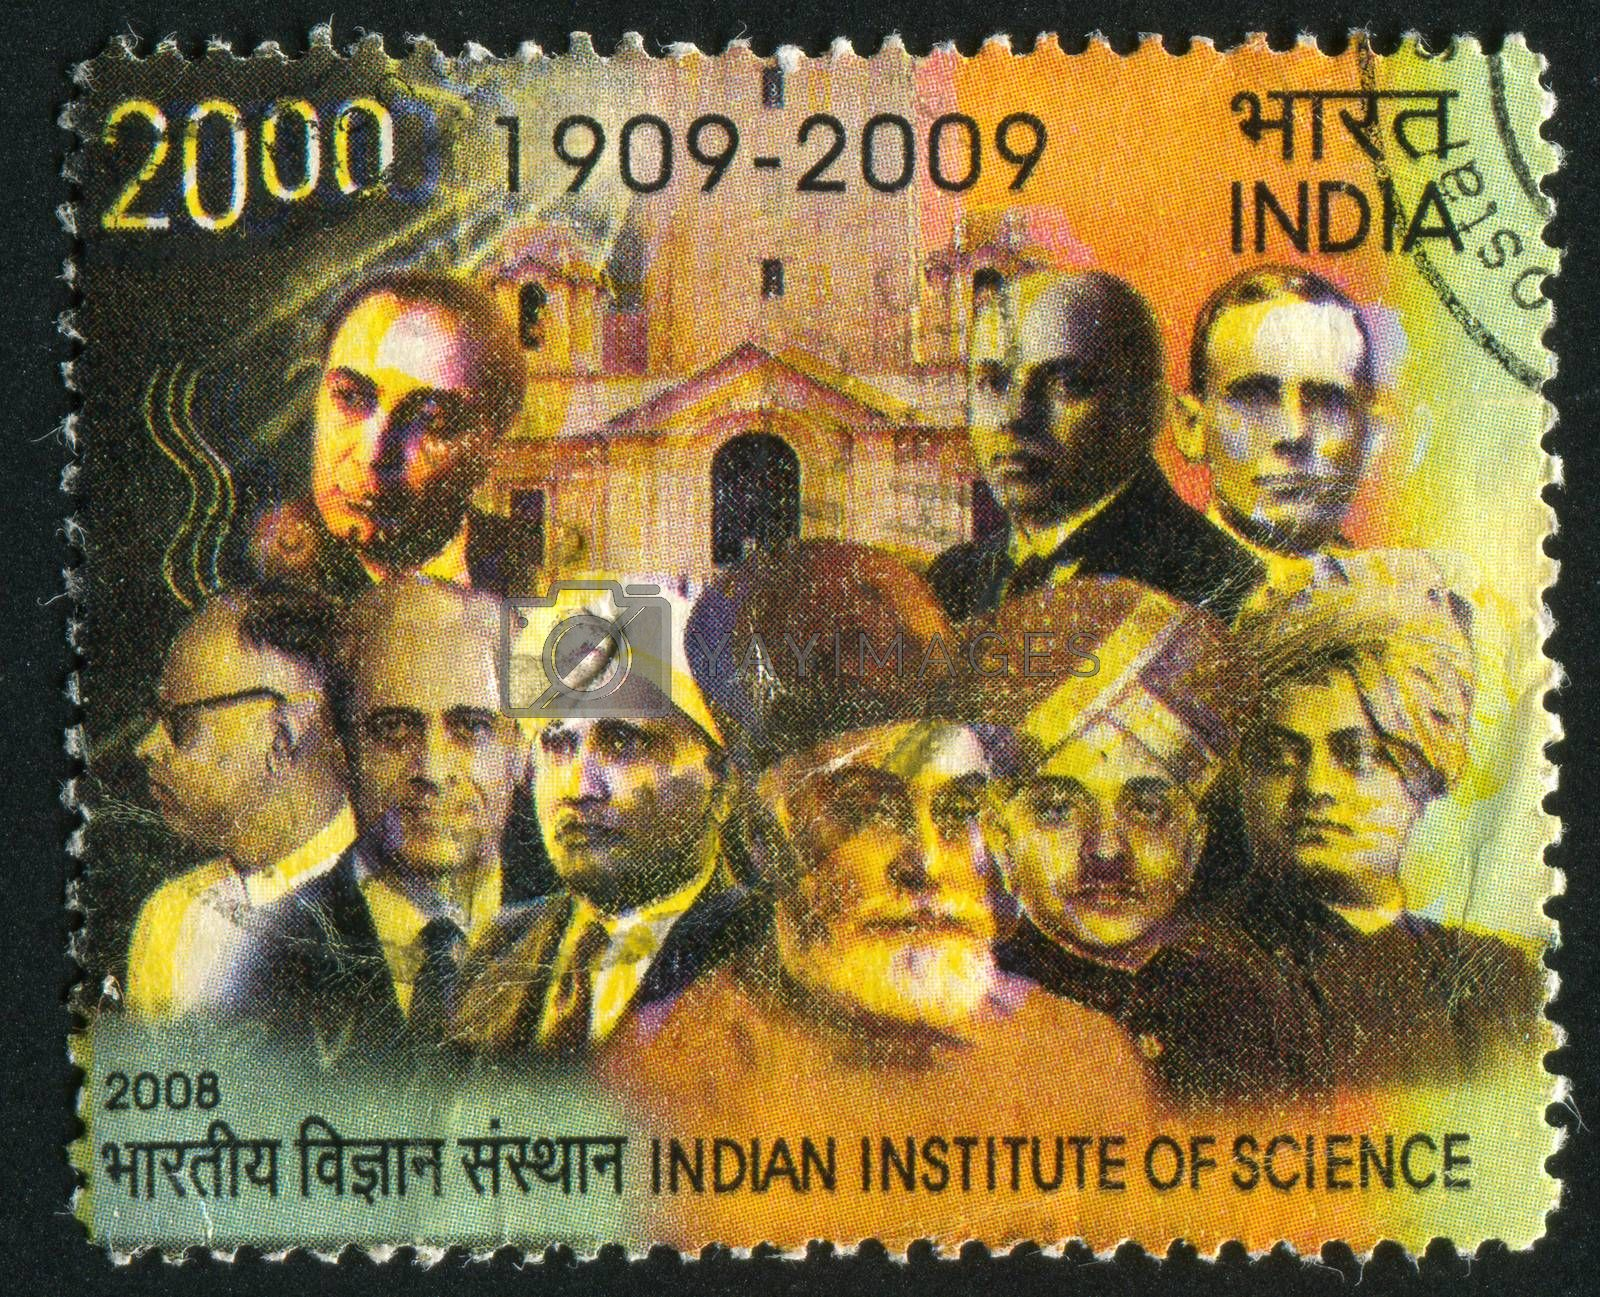 INDIA - CIRCA 2008: stamp printed by India, shows building of institute, scientists, circa 2008